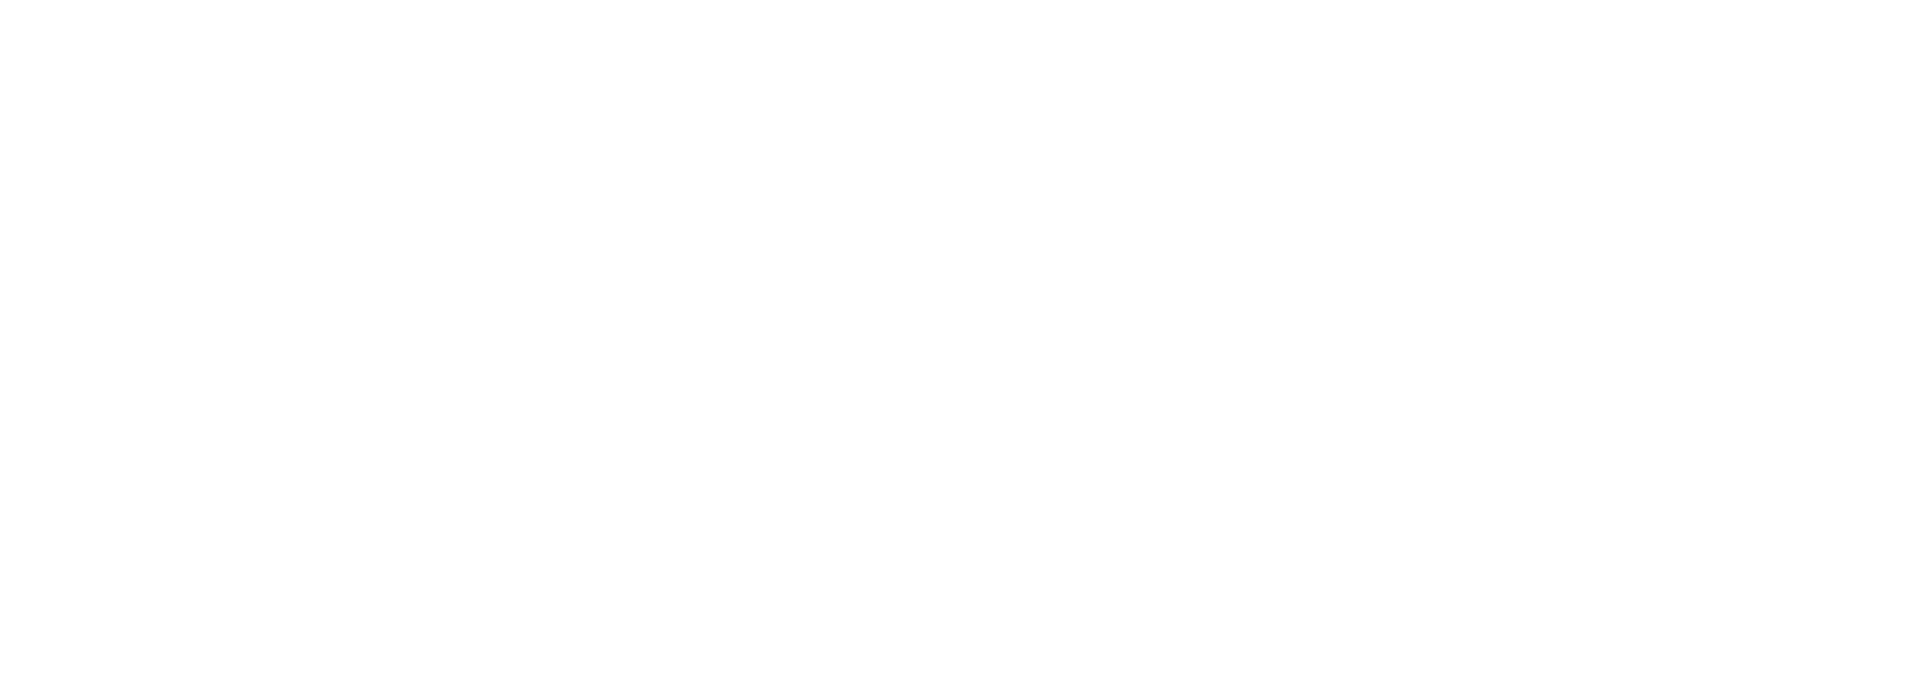 Visit Us Today